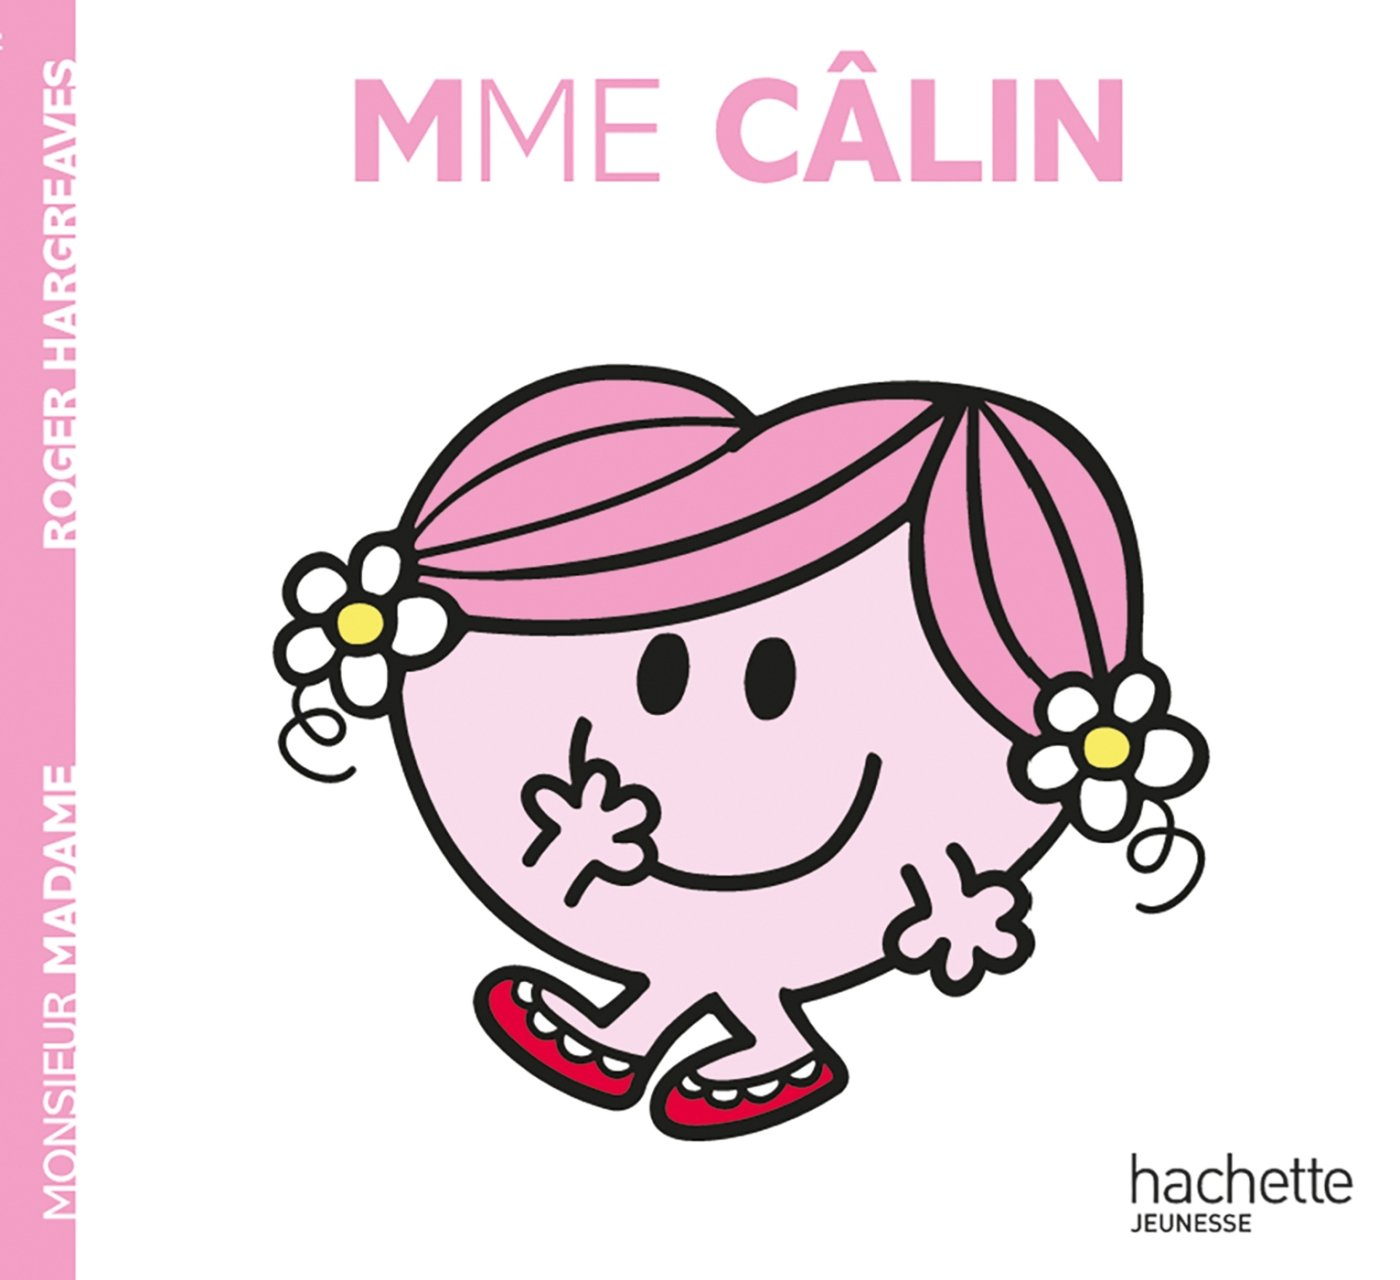 madame calin